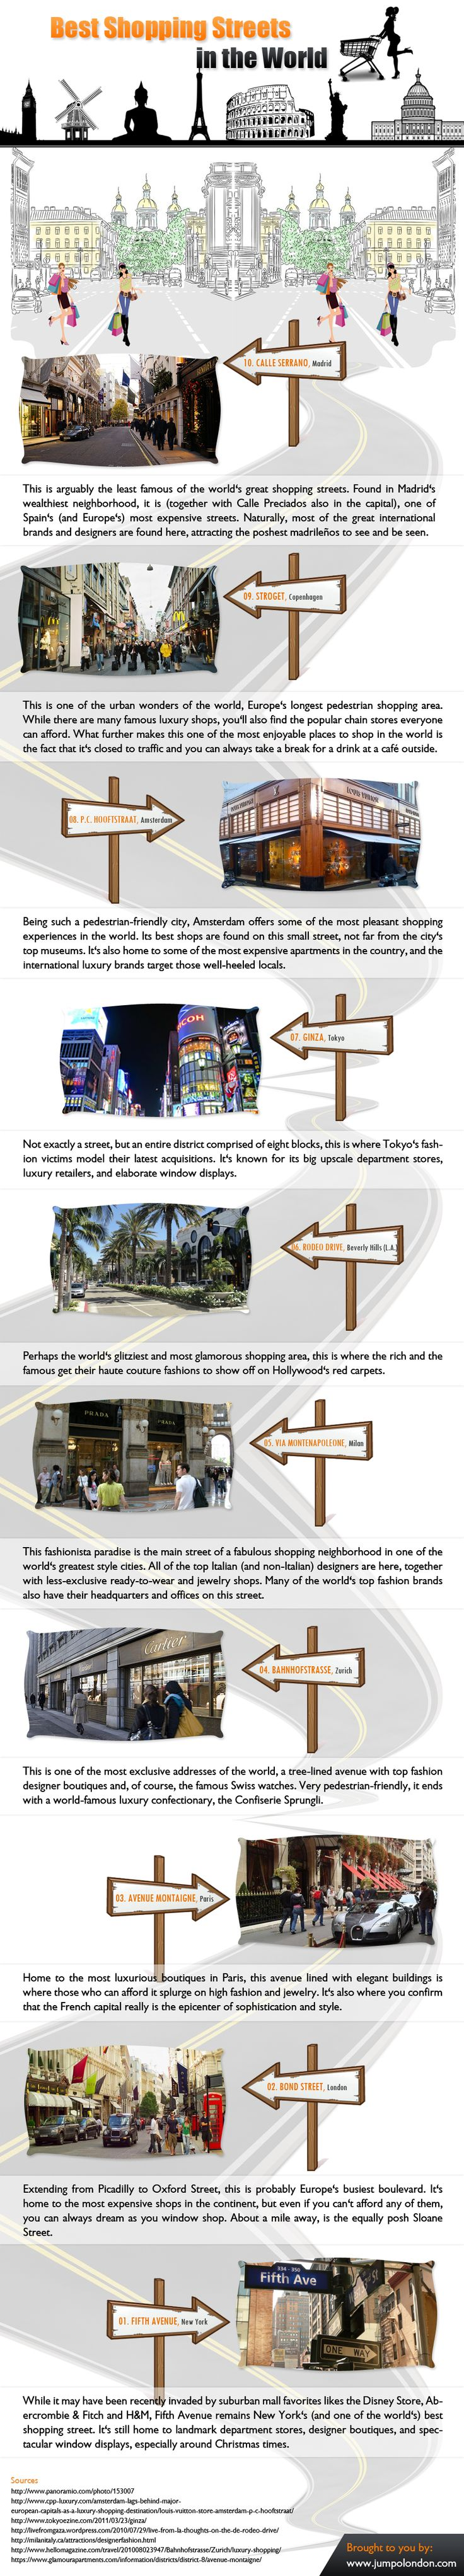 Best Shopping Streets in the World #Infographic #Shopping #Travel